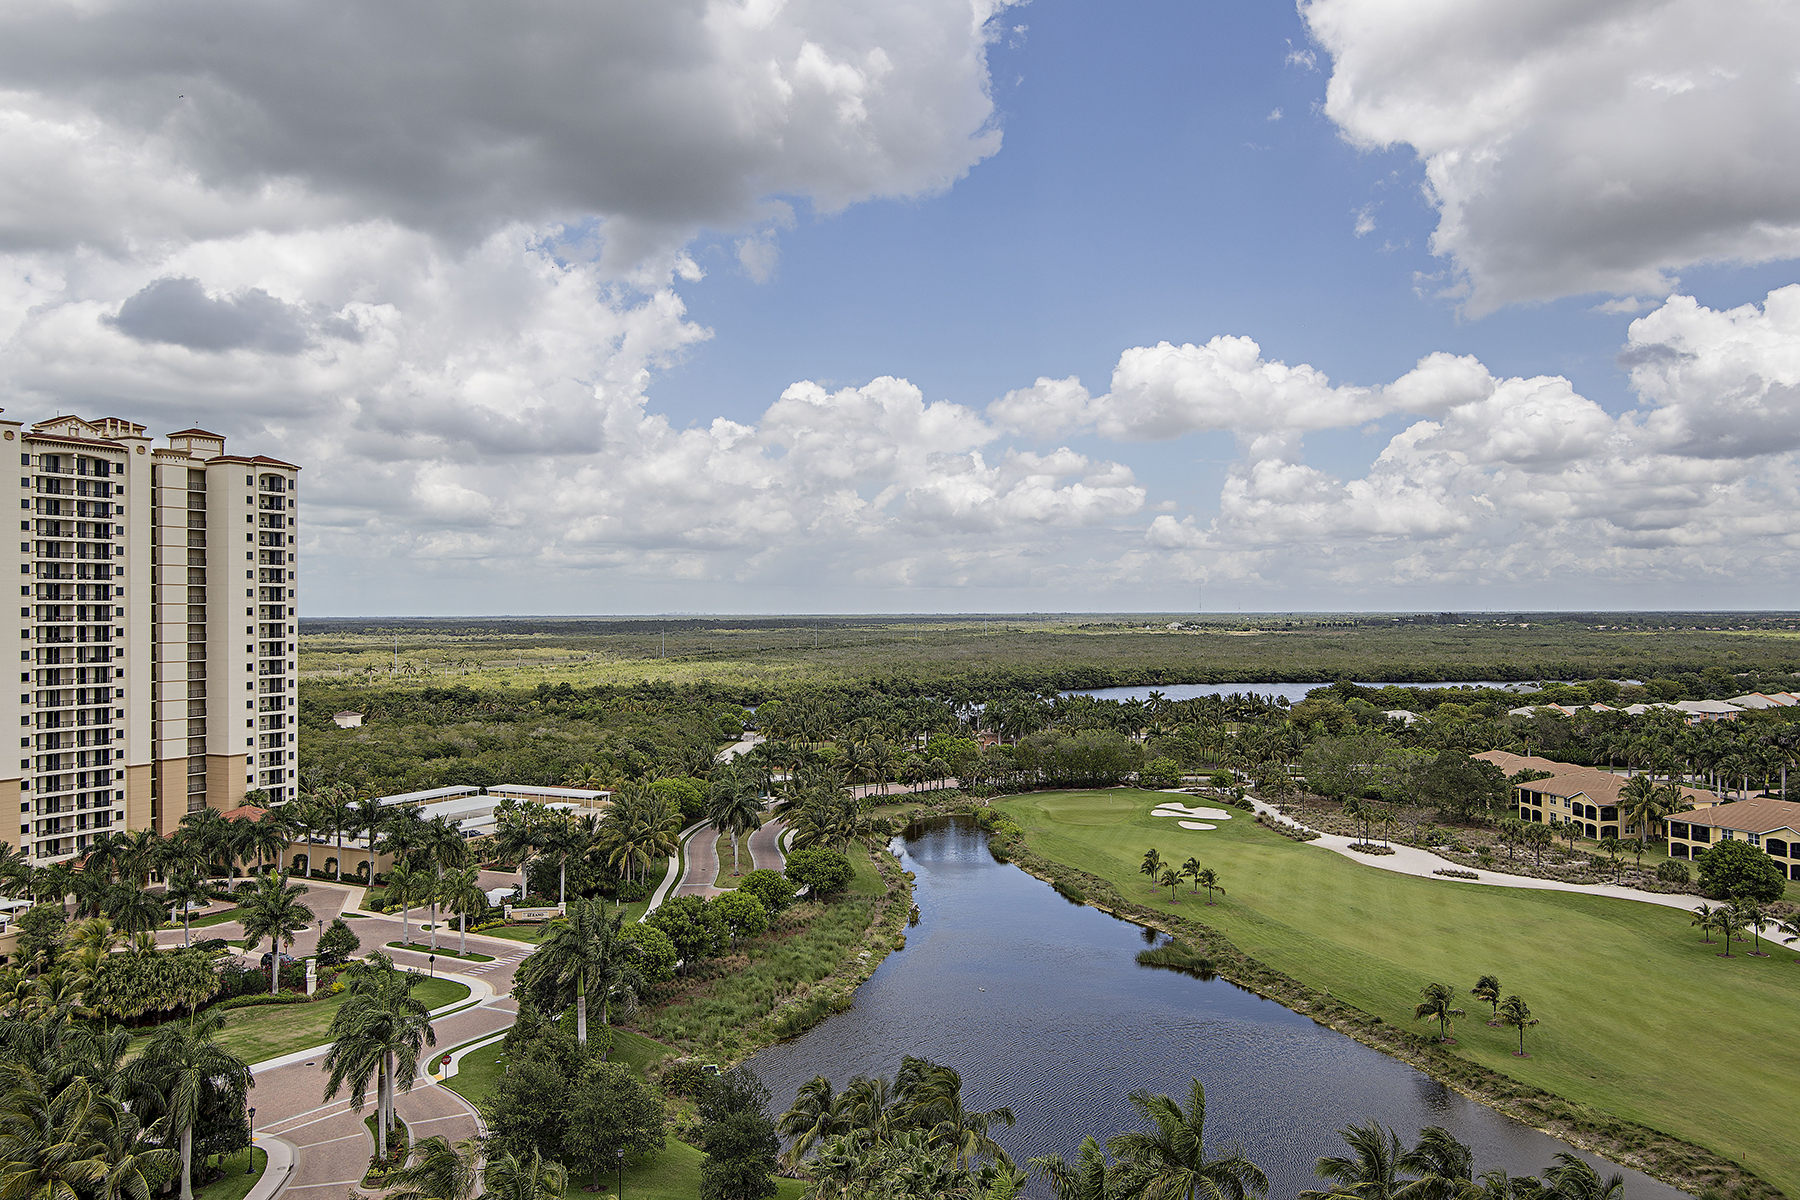 Condominium for Sale at HAMMOCK BAY - AVERSANA 1060 Borghese Ln 1204 Naples, Florida, 34114 United States